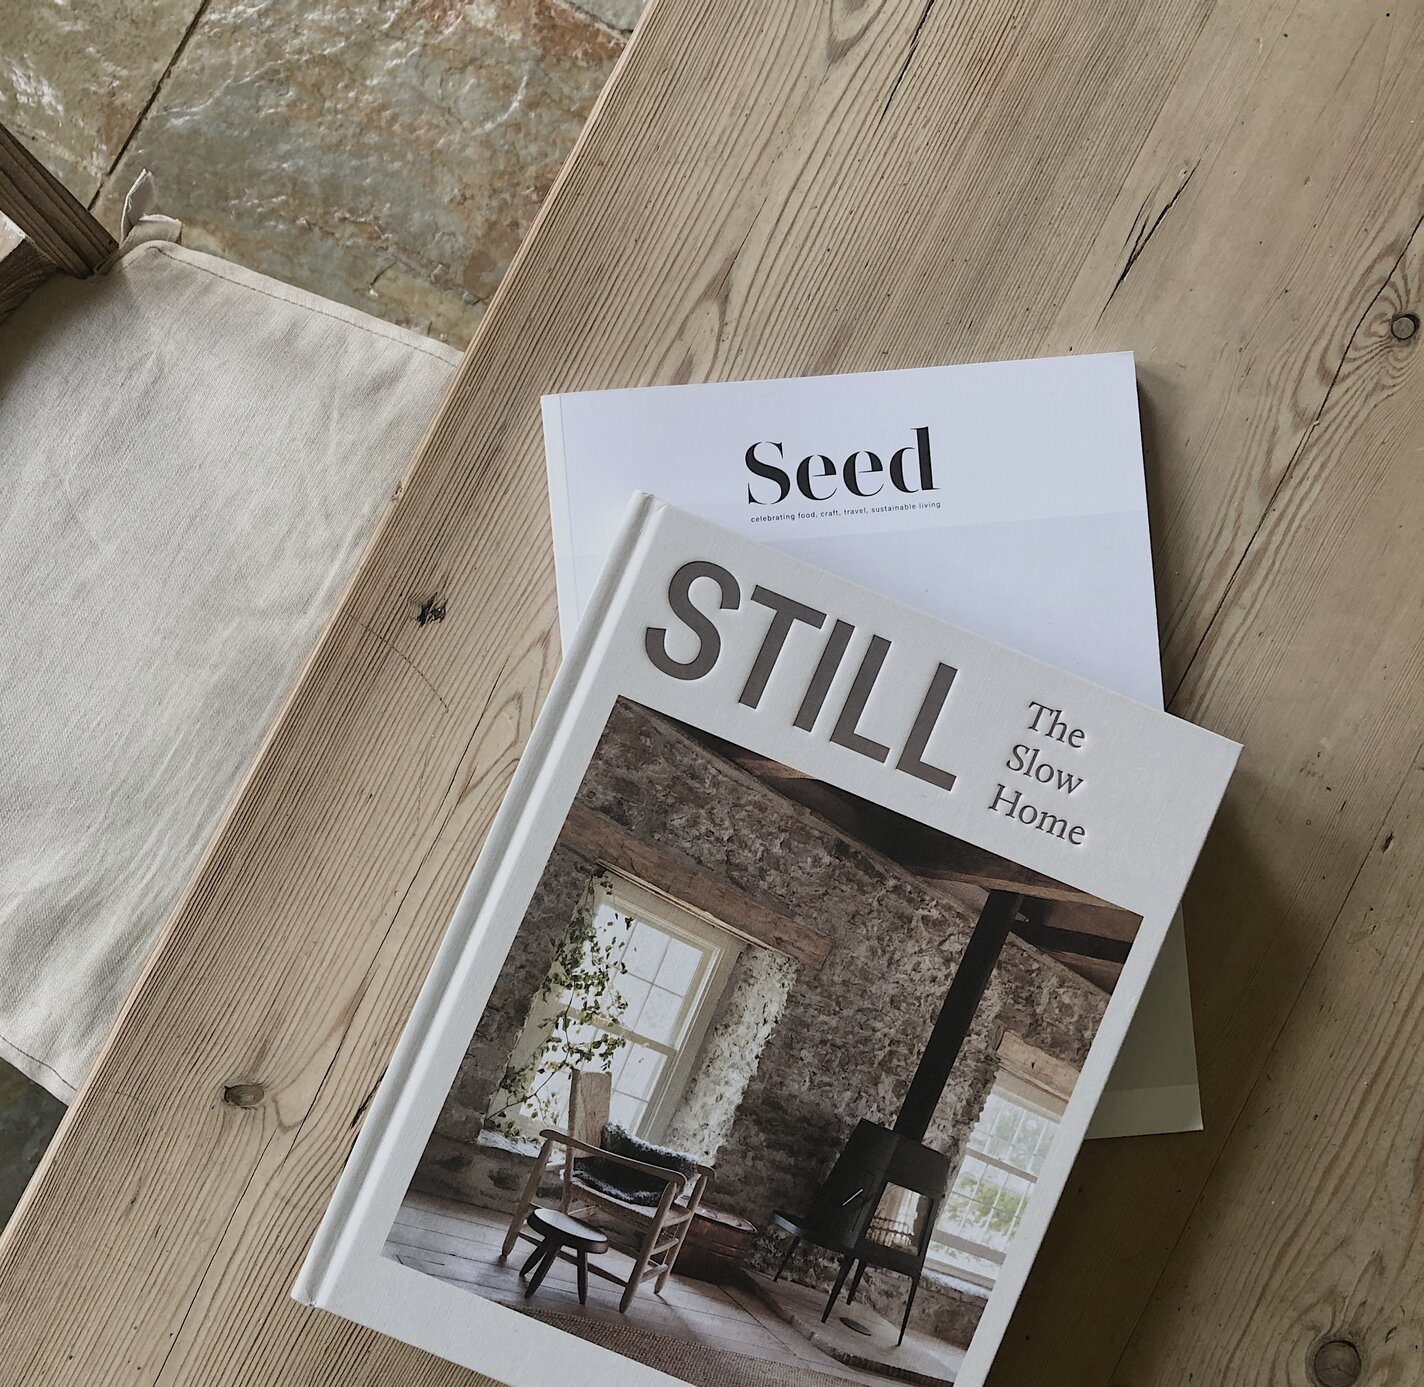 Still The Slow Home book and Seed Magazine